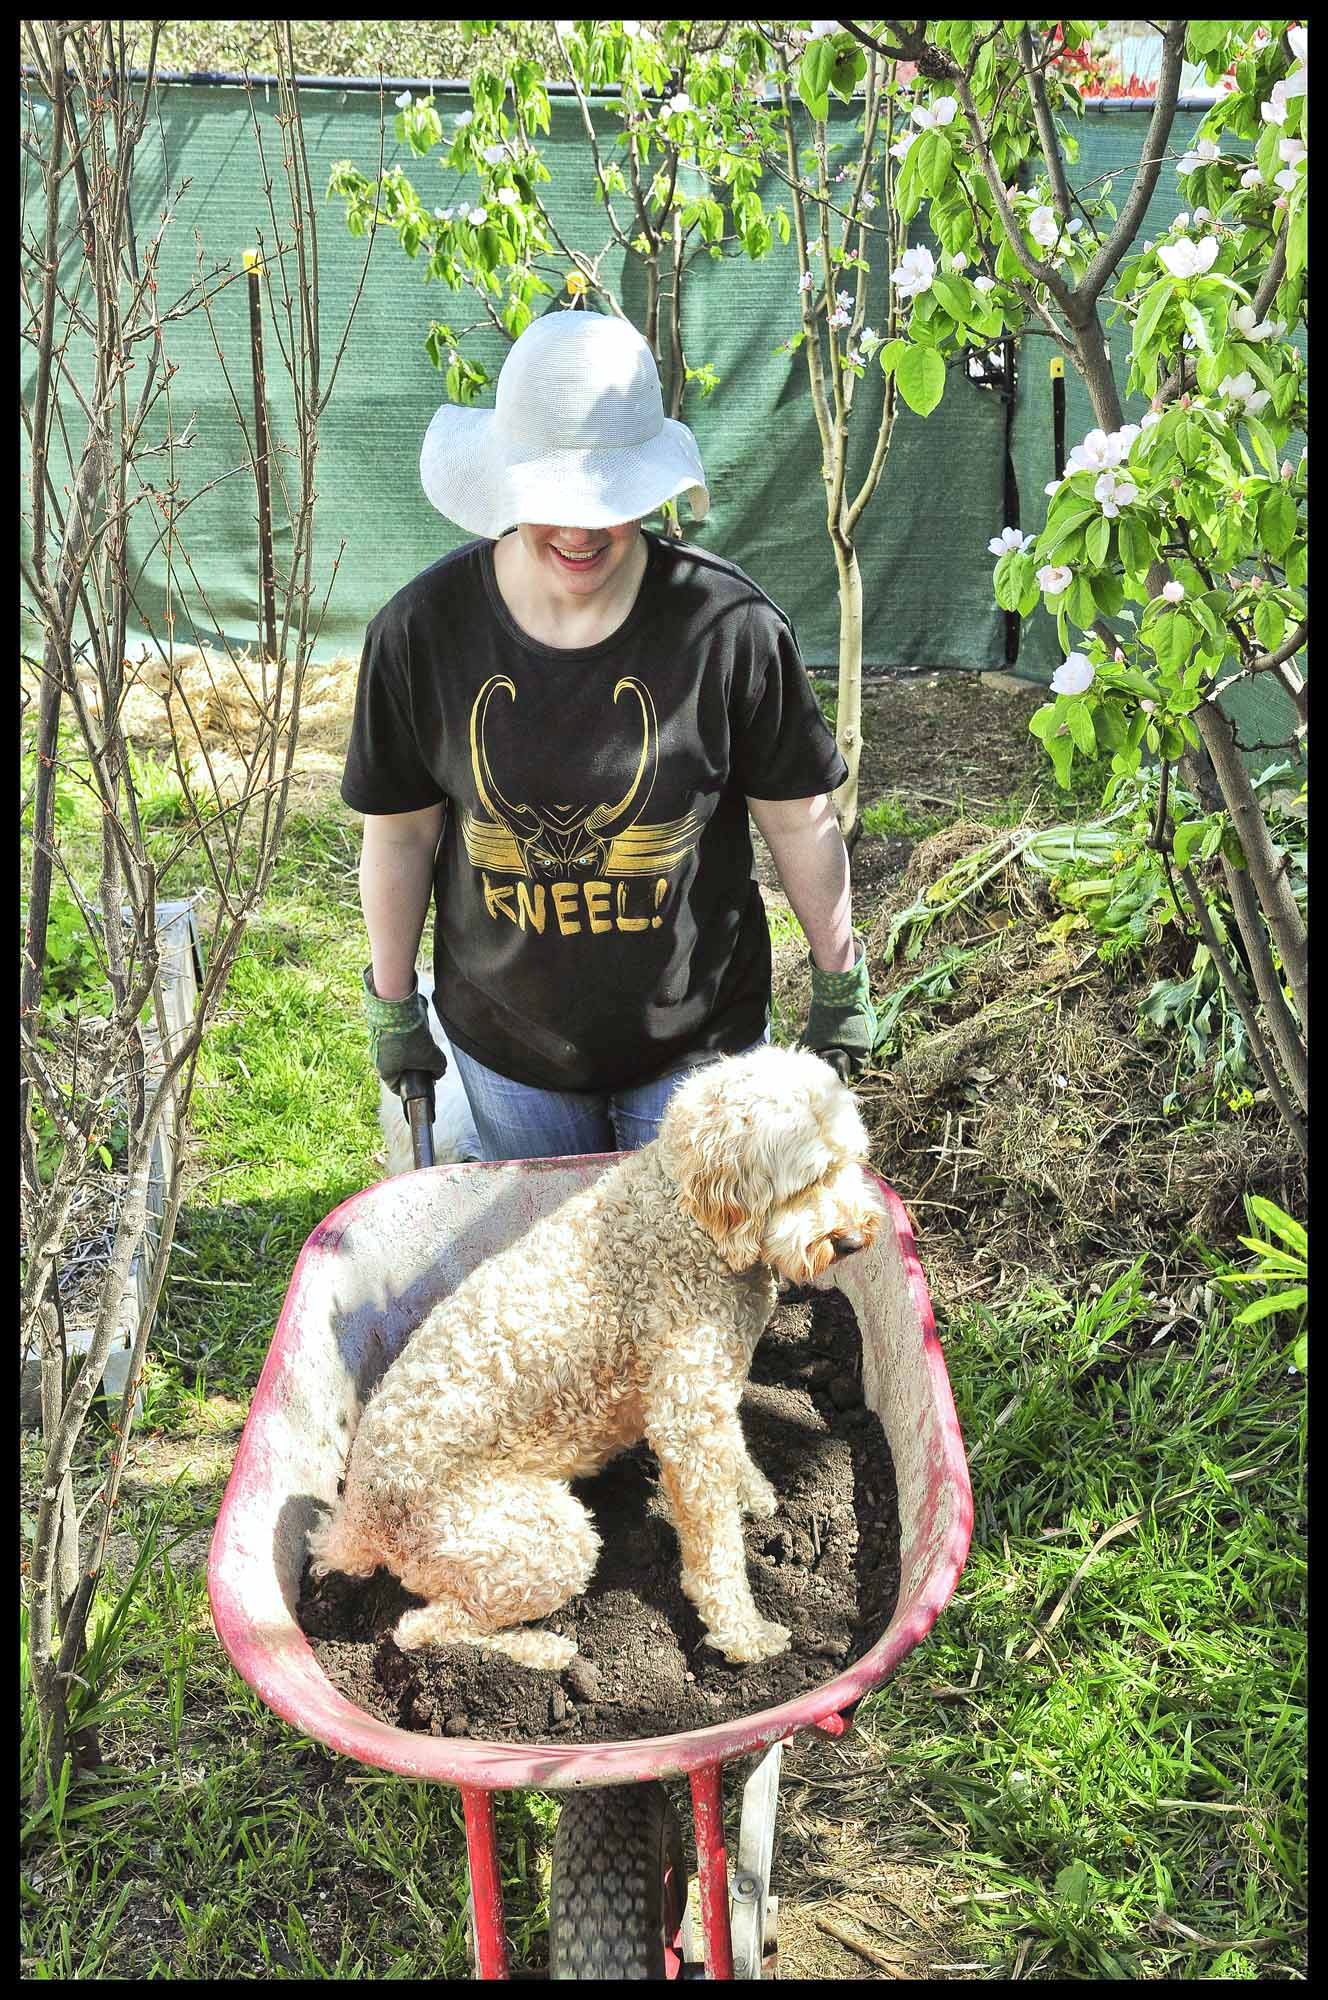 Every gardener needs a Labradoodle in their wheelbarrow. It adds so much joy to the whole gardening experience.